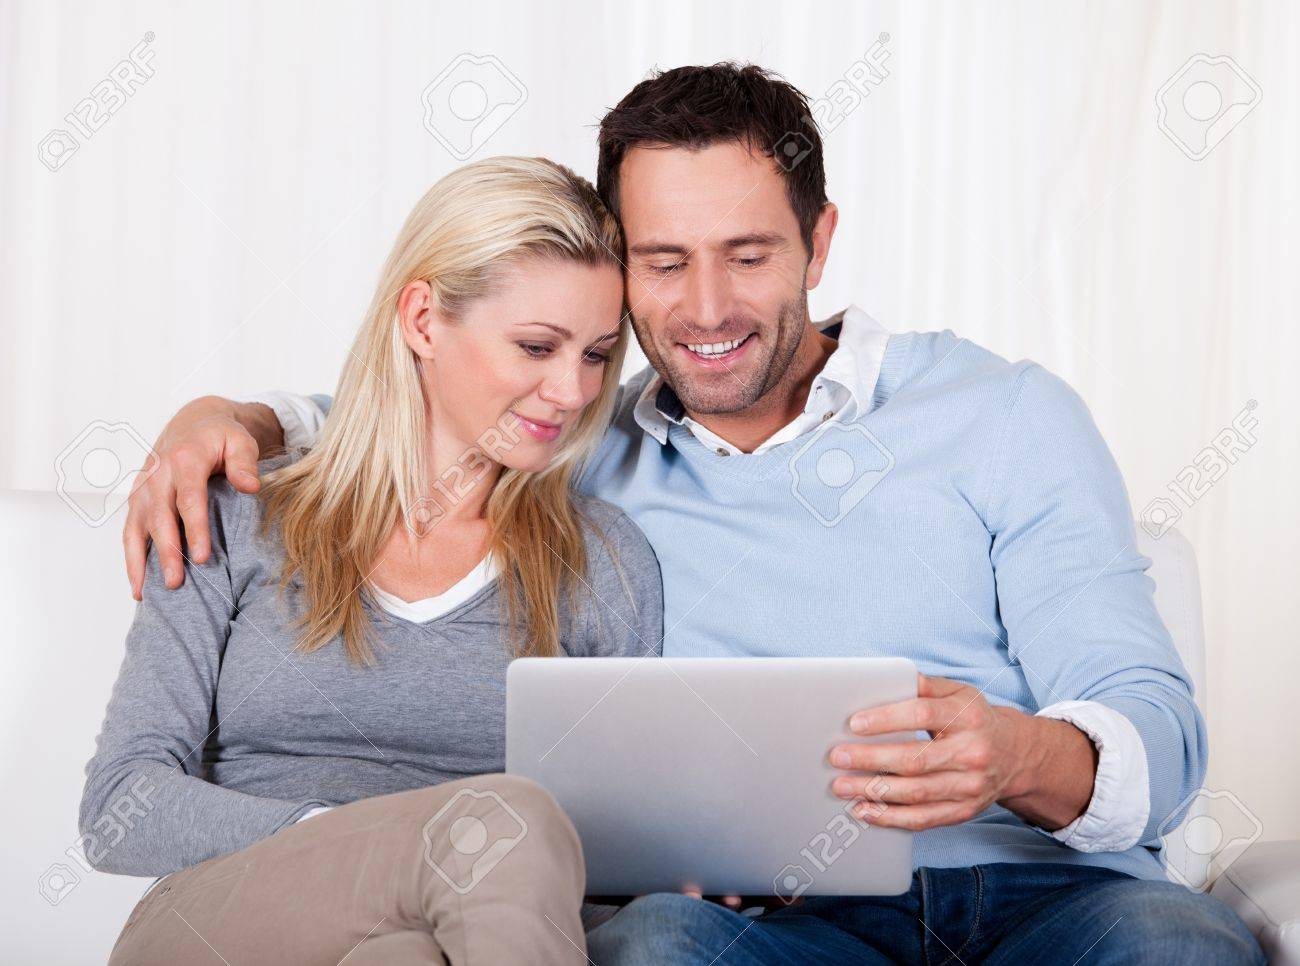 Beautiful young couple with lovely smiles sitting side by side on a sofa looking at a tablet together Stock Photo - 16886341